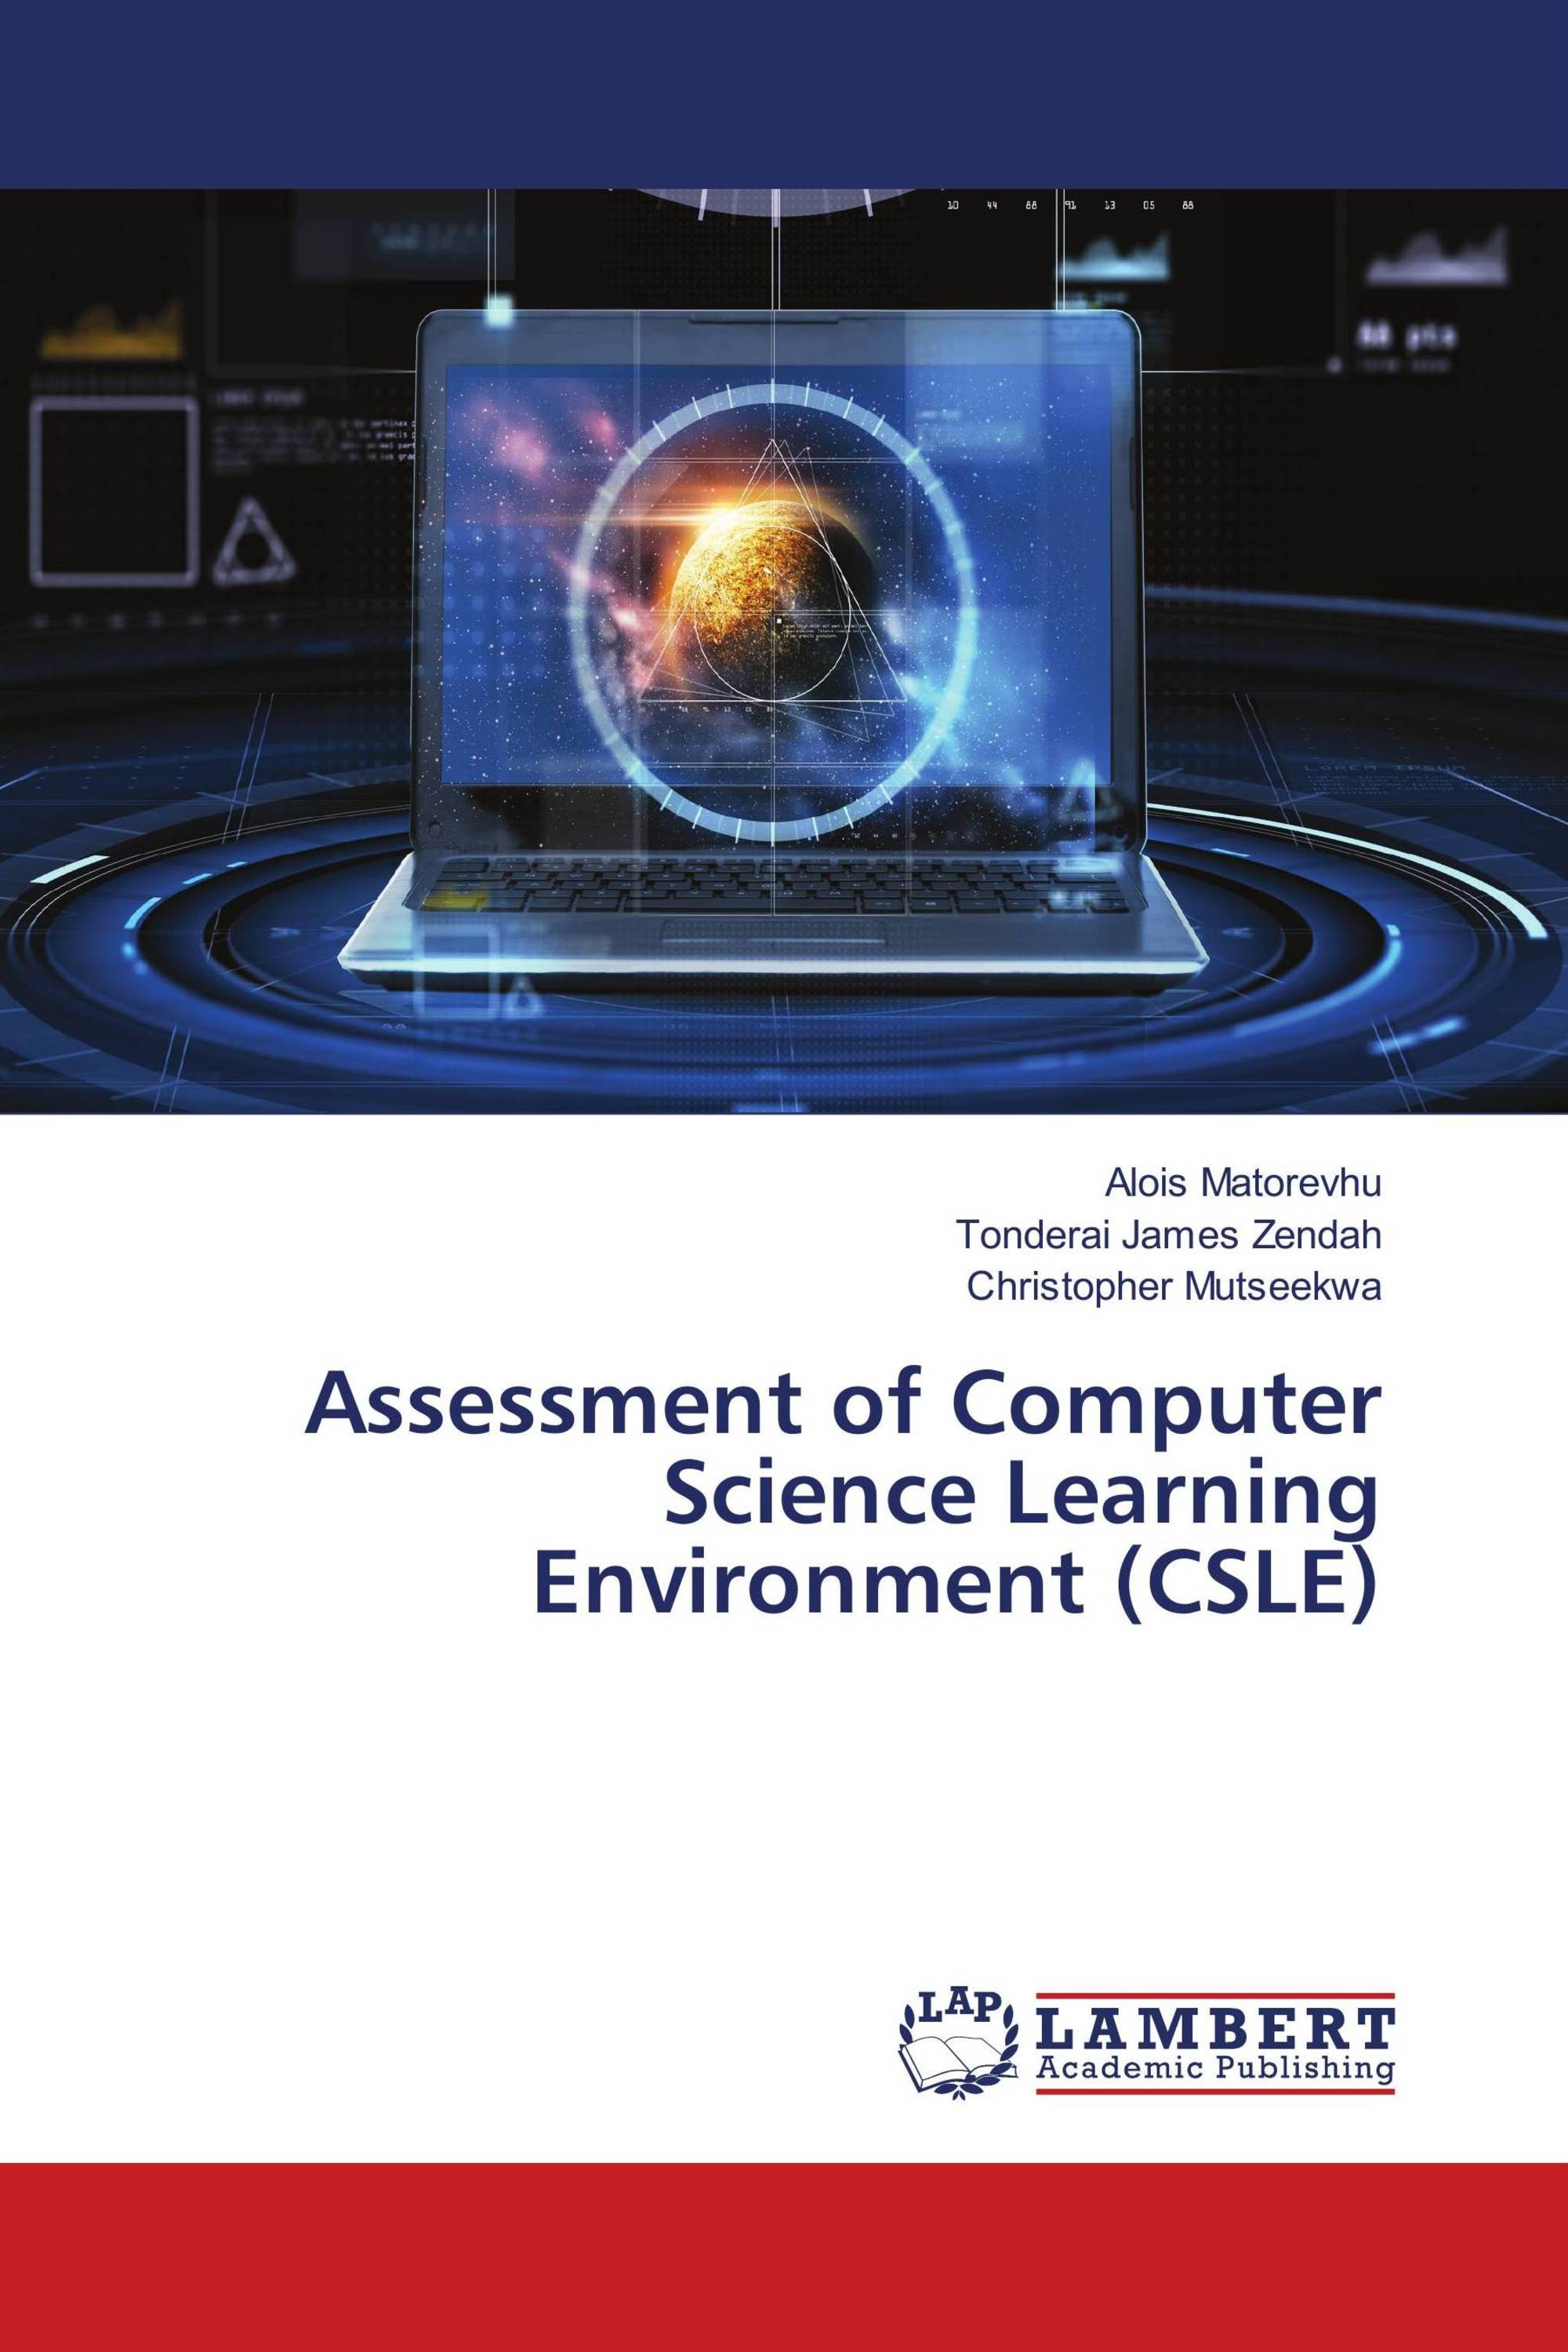 Assessment of Computer Science Learning Environment (CSLE)